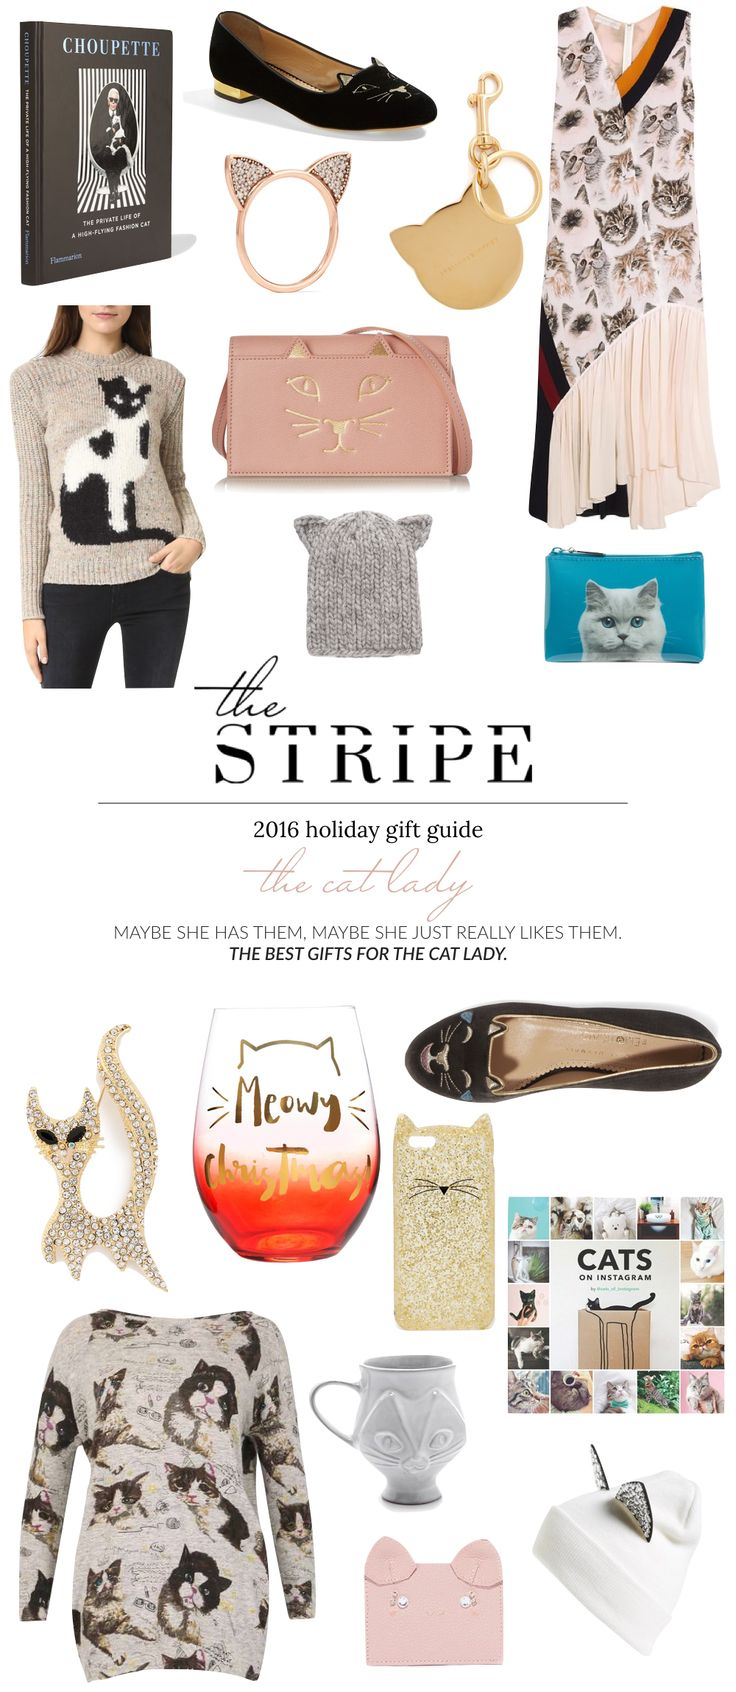 Wonderful Best Ladies Gifts 2016 Part - 9: Find This Pin And More On U003c Holiday 2016: The Best Gifts U003e By Thestripeny.